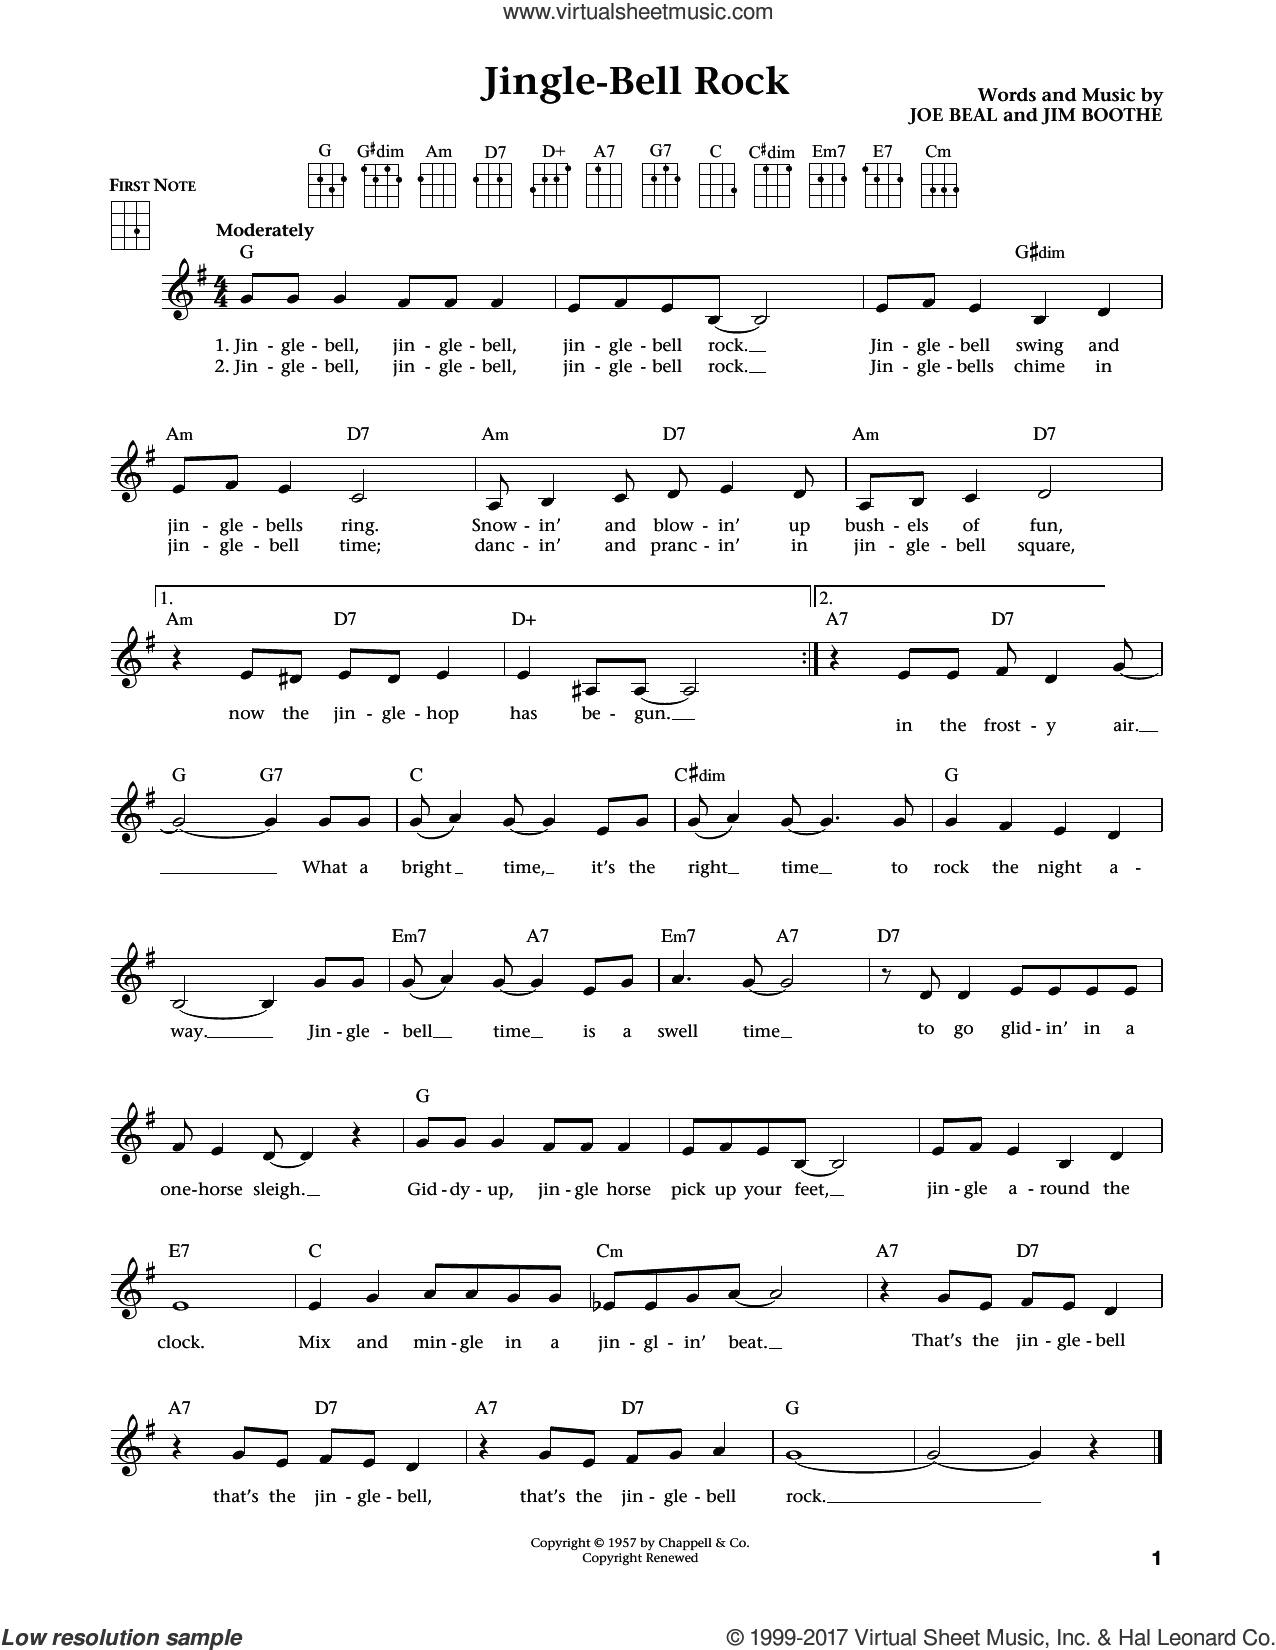 Jingle Bell Rock (from The Daily Ukulele) (arr. Liz and Jim Beloff) sheet music for ukulele by Joe Beal and Jim Boothe, intermediate skill level